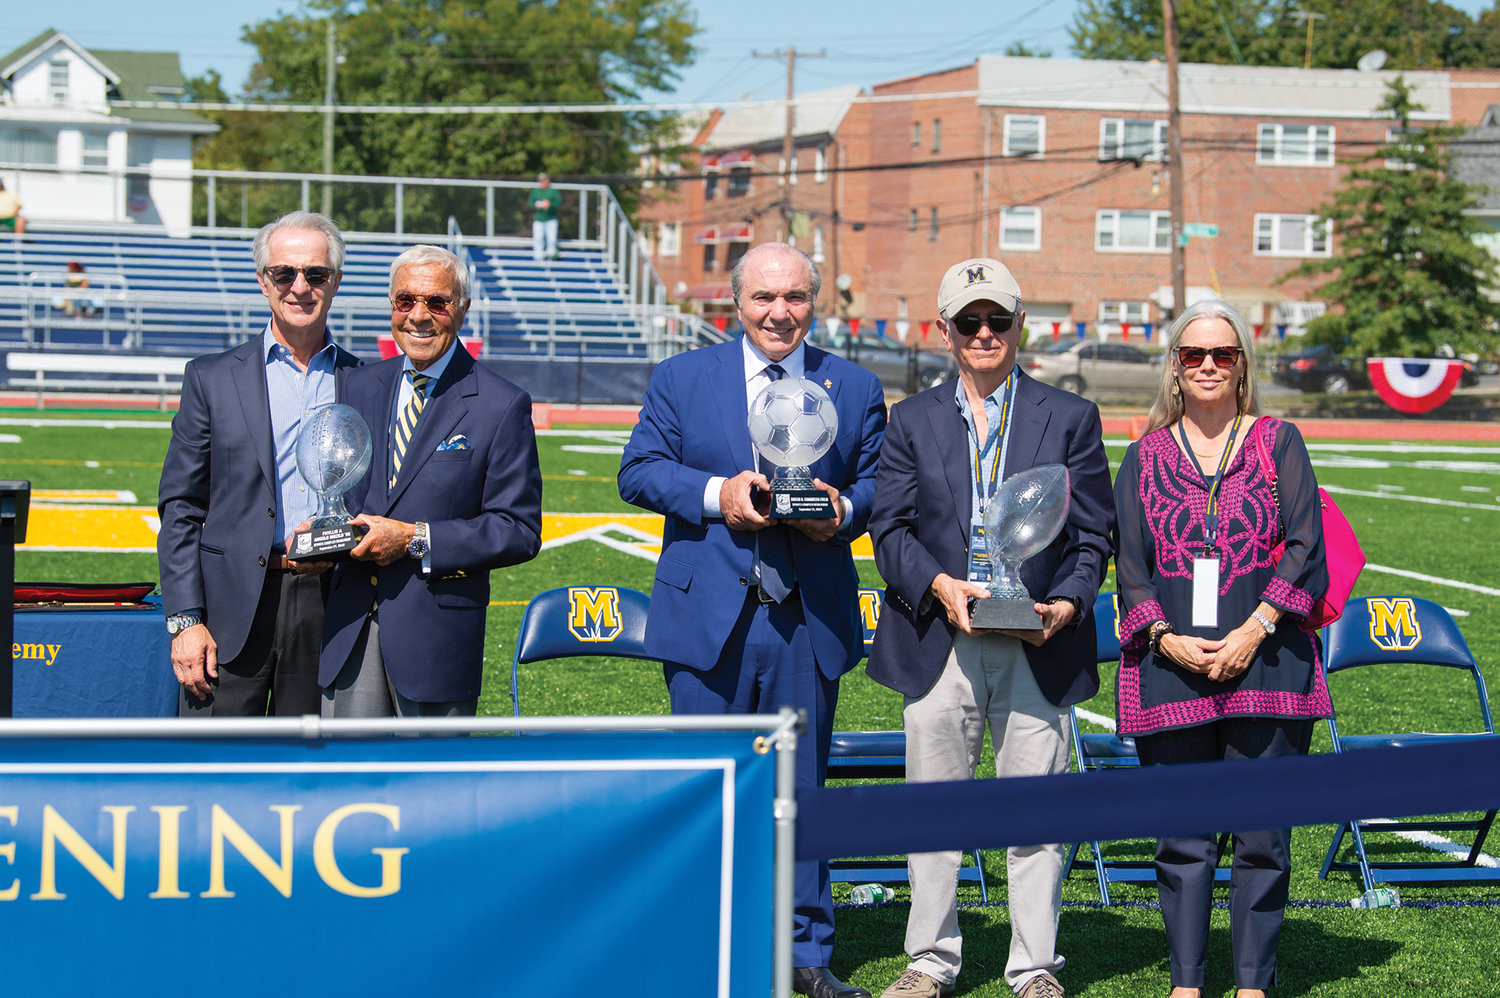 Below, School President Peter Corritori Jr., '71, left, stands with the earliest supporters of the project, Mozilo, second from left; Commisso, center; and Buzz Zaino '61 and Allison Zaino, right.